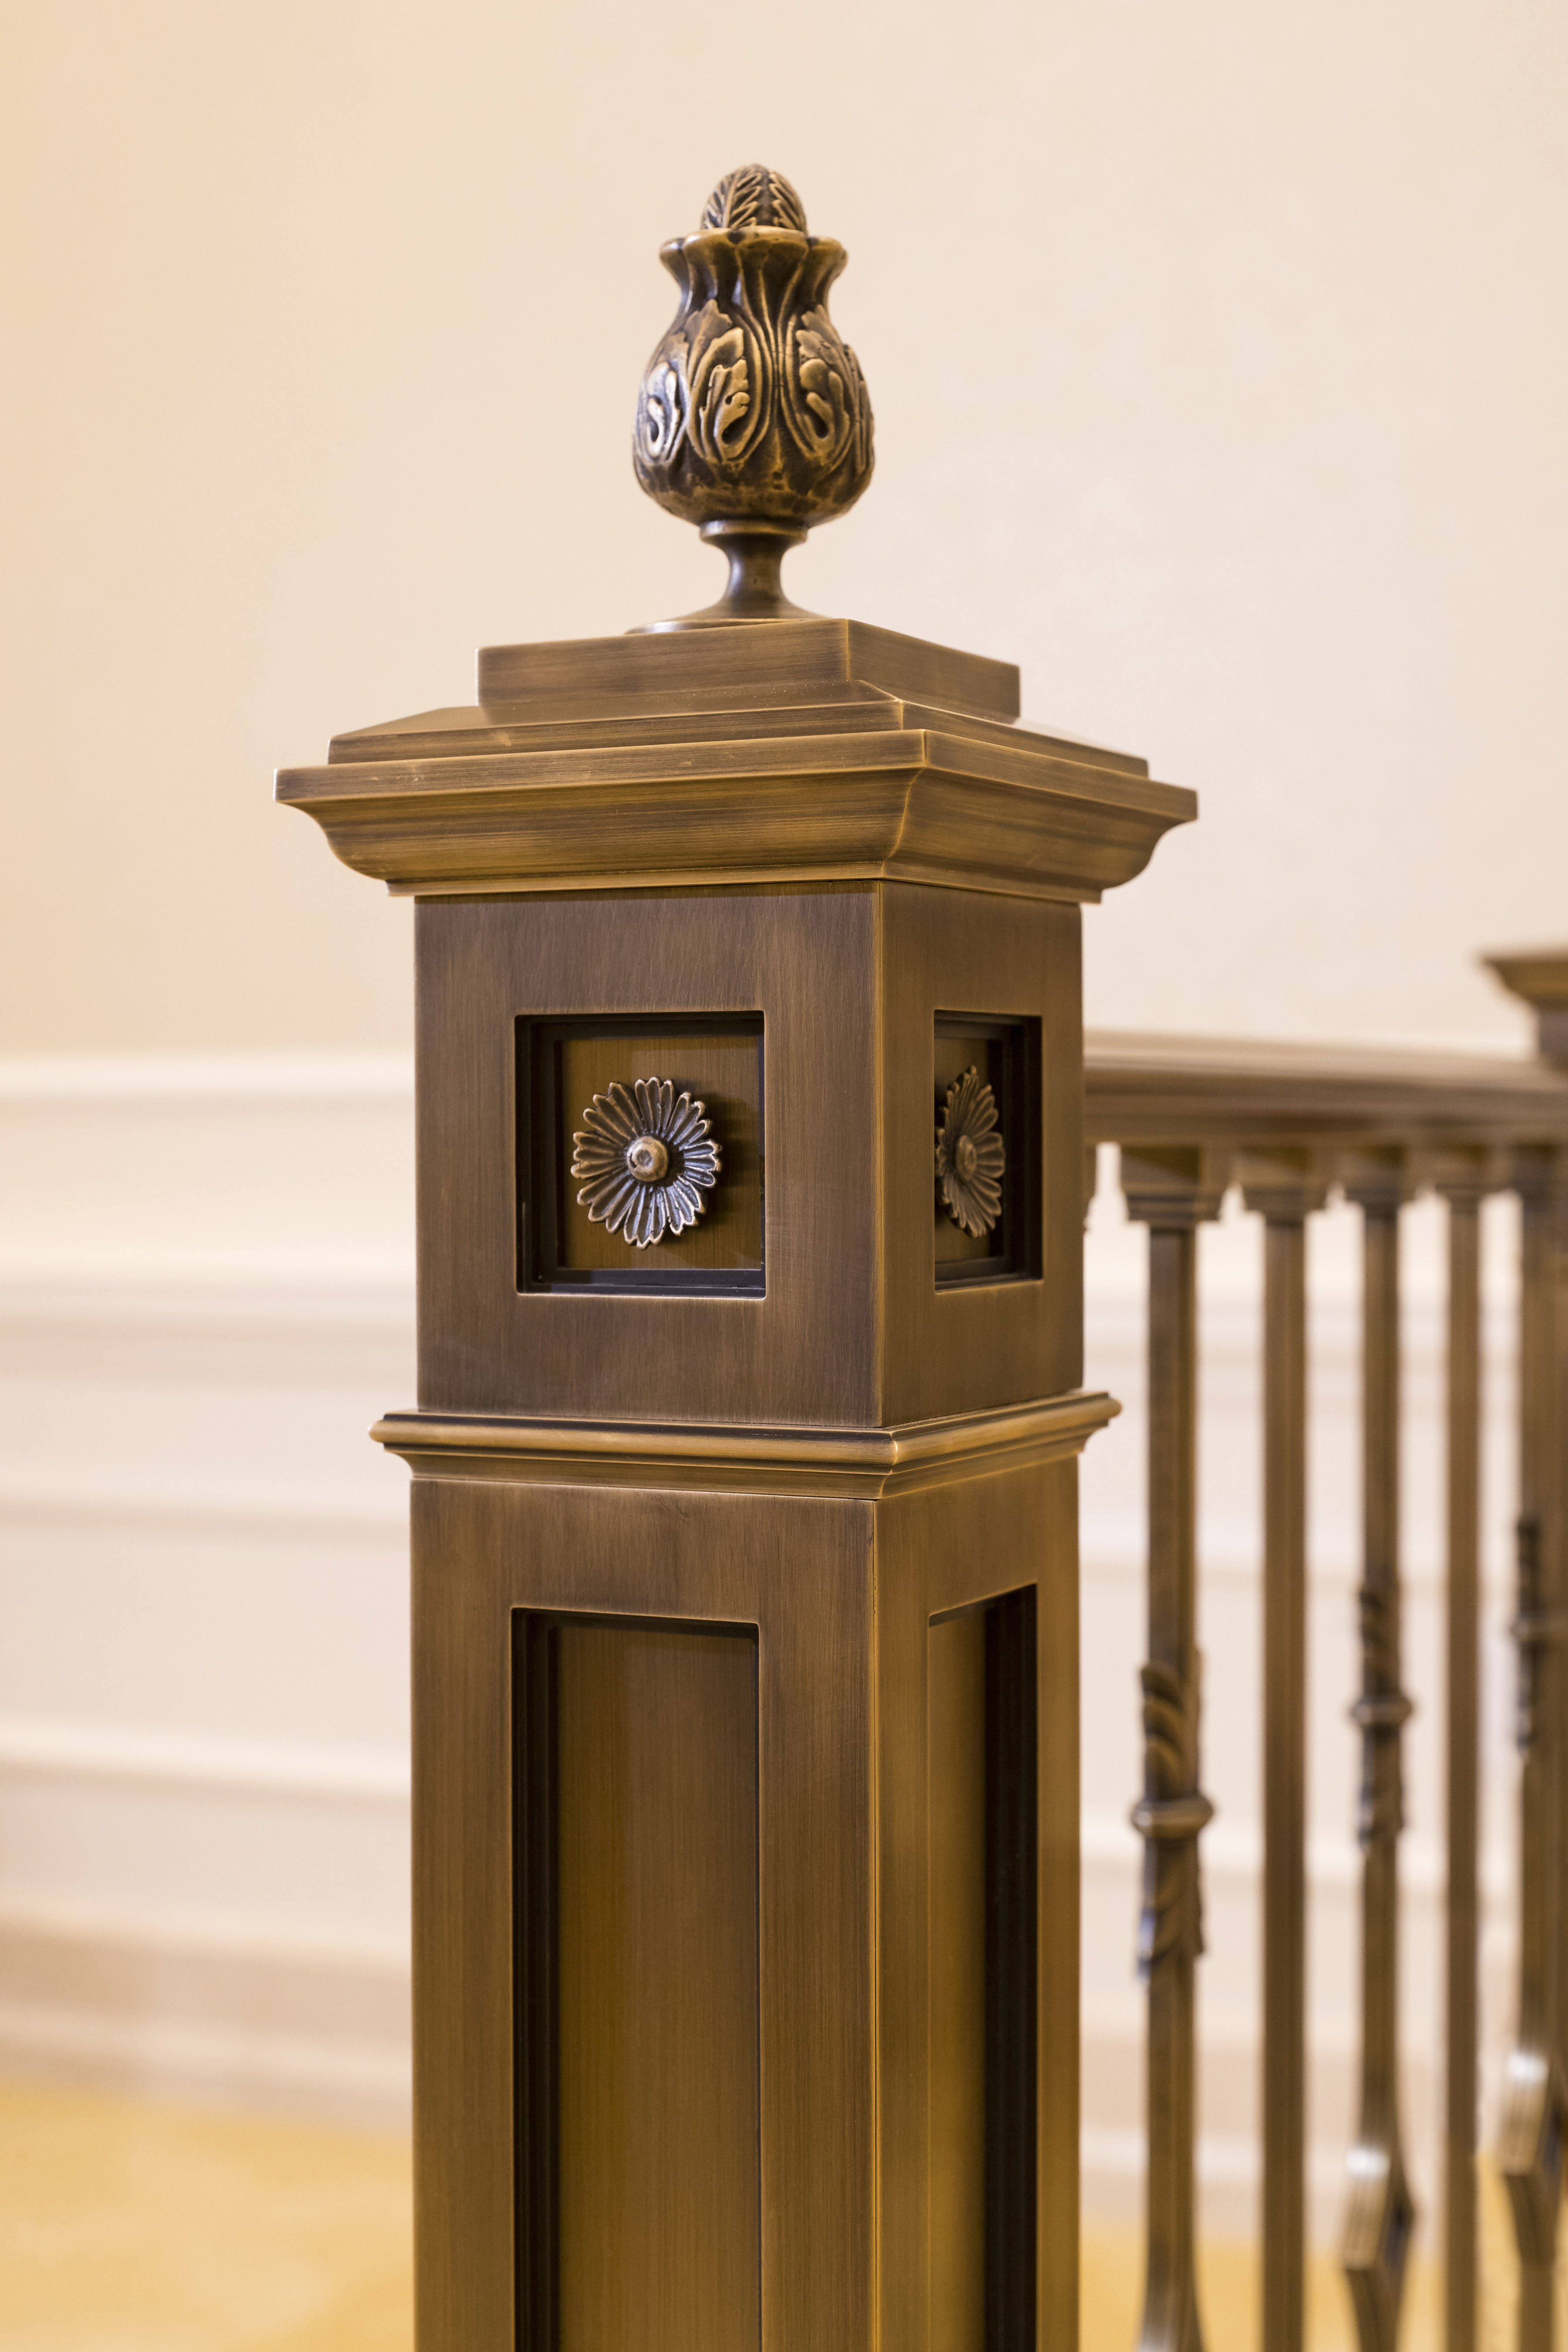 Artistic detail is displayed in various places throughout the Oklahoma City Oklahoma Temple.